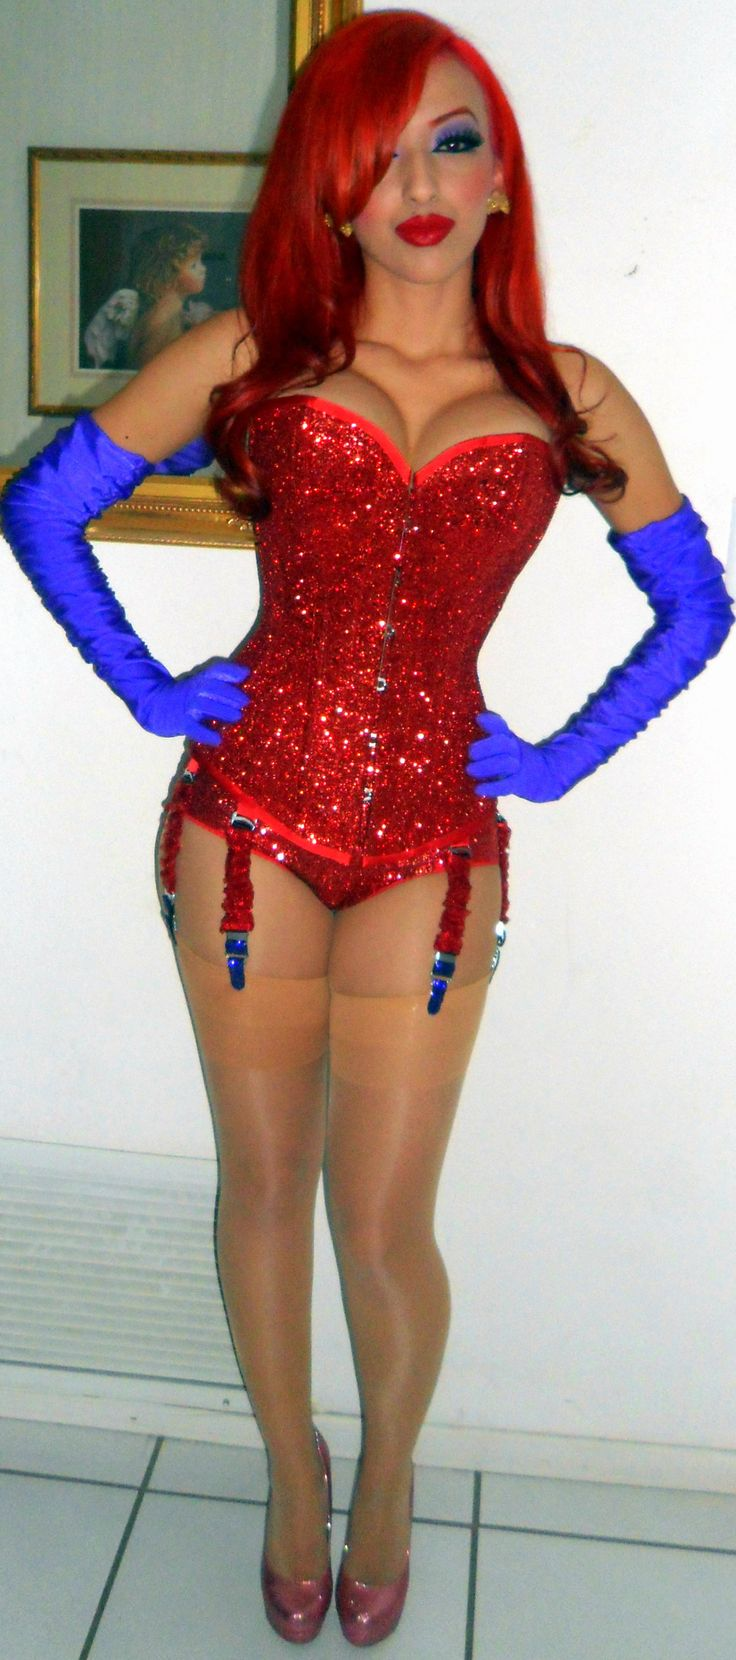 17 Best ideas about Jessica Rabbit Costume on Pinterest | Jessica rabbit images Jessica rabbit ...